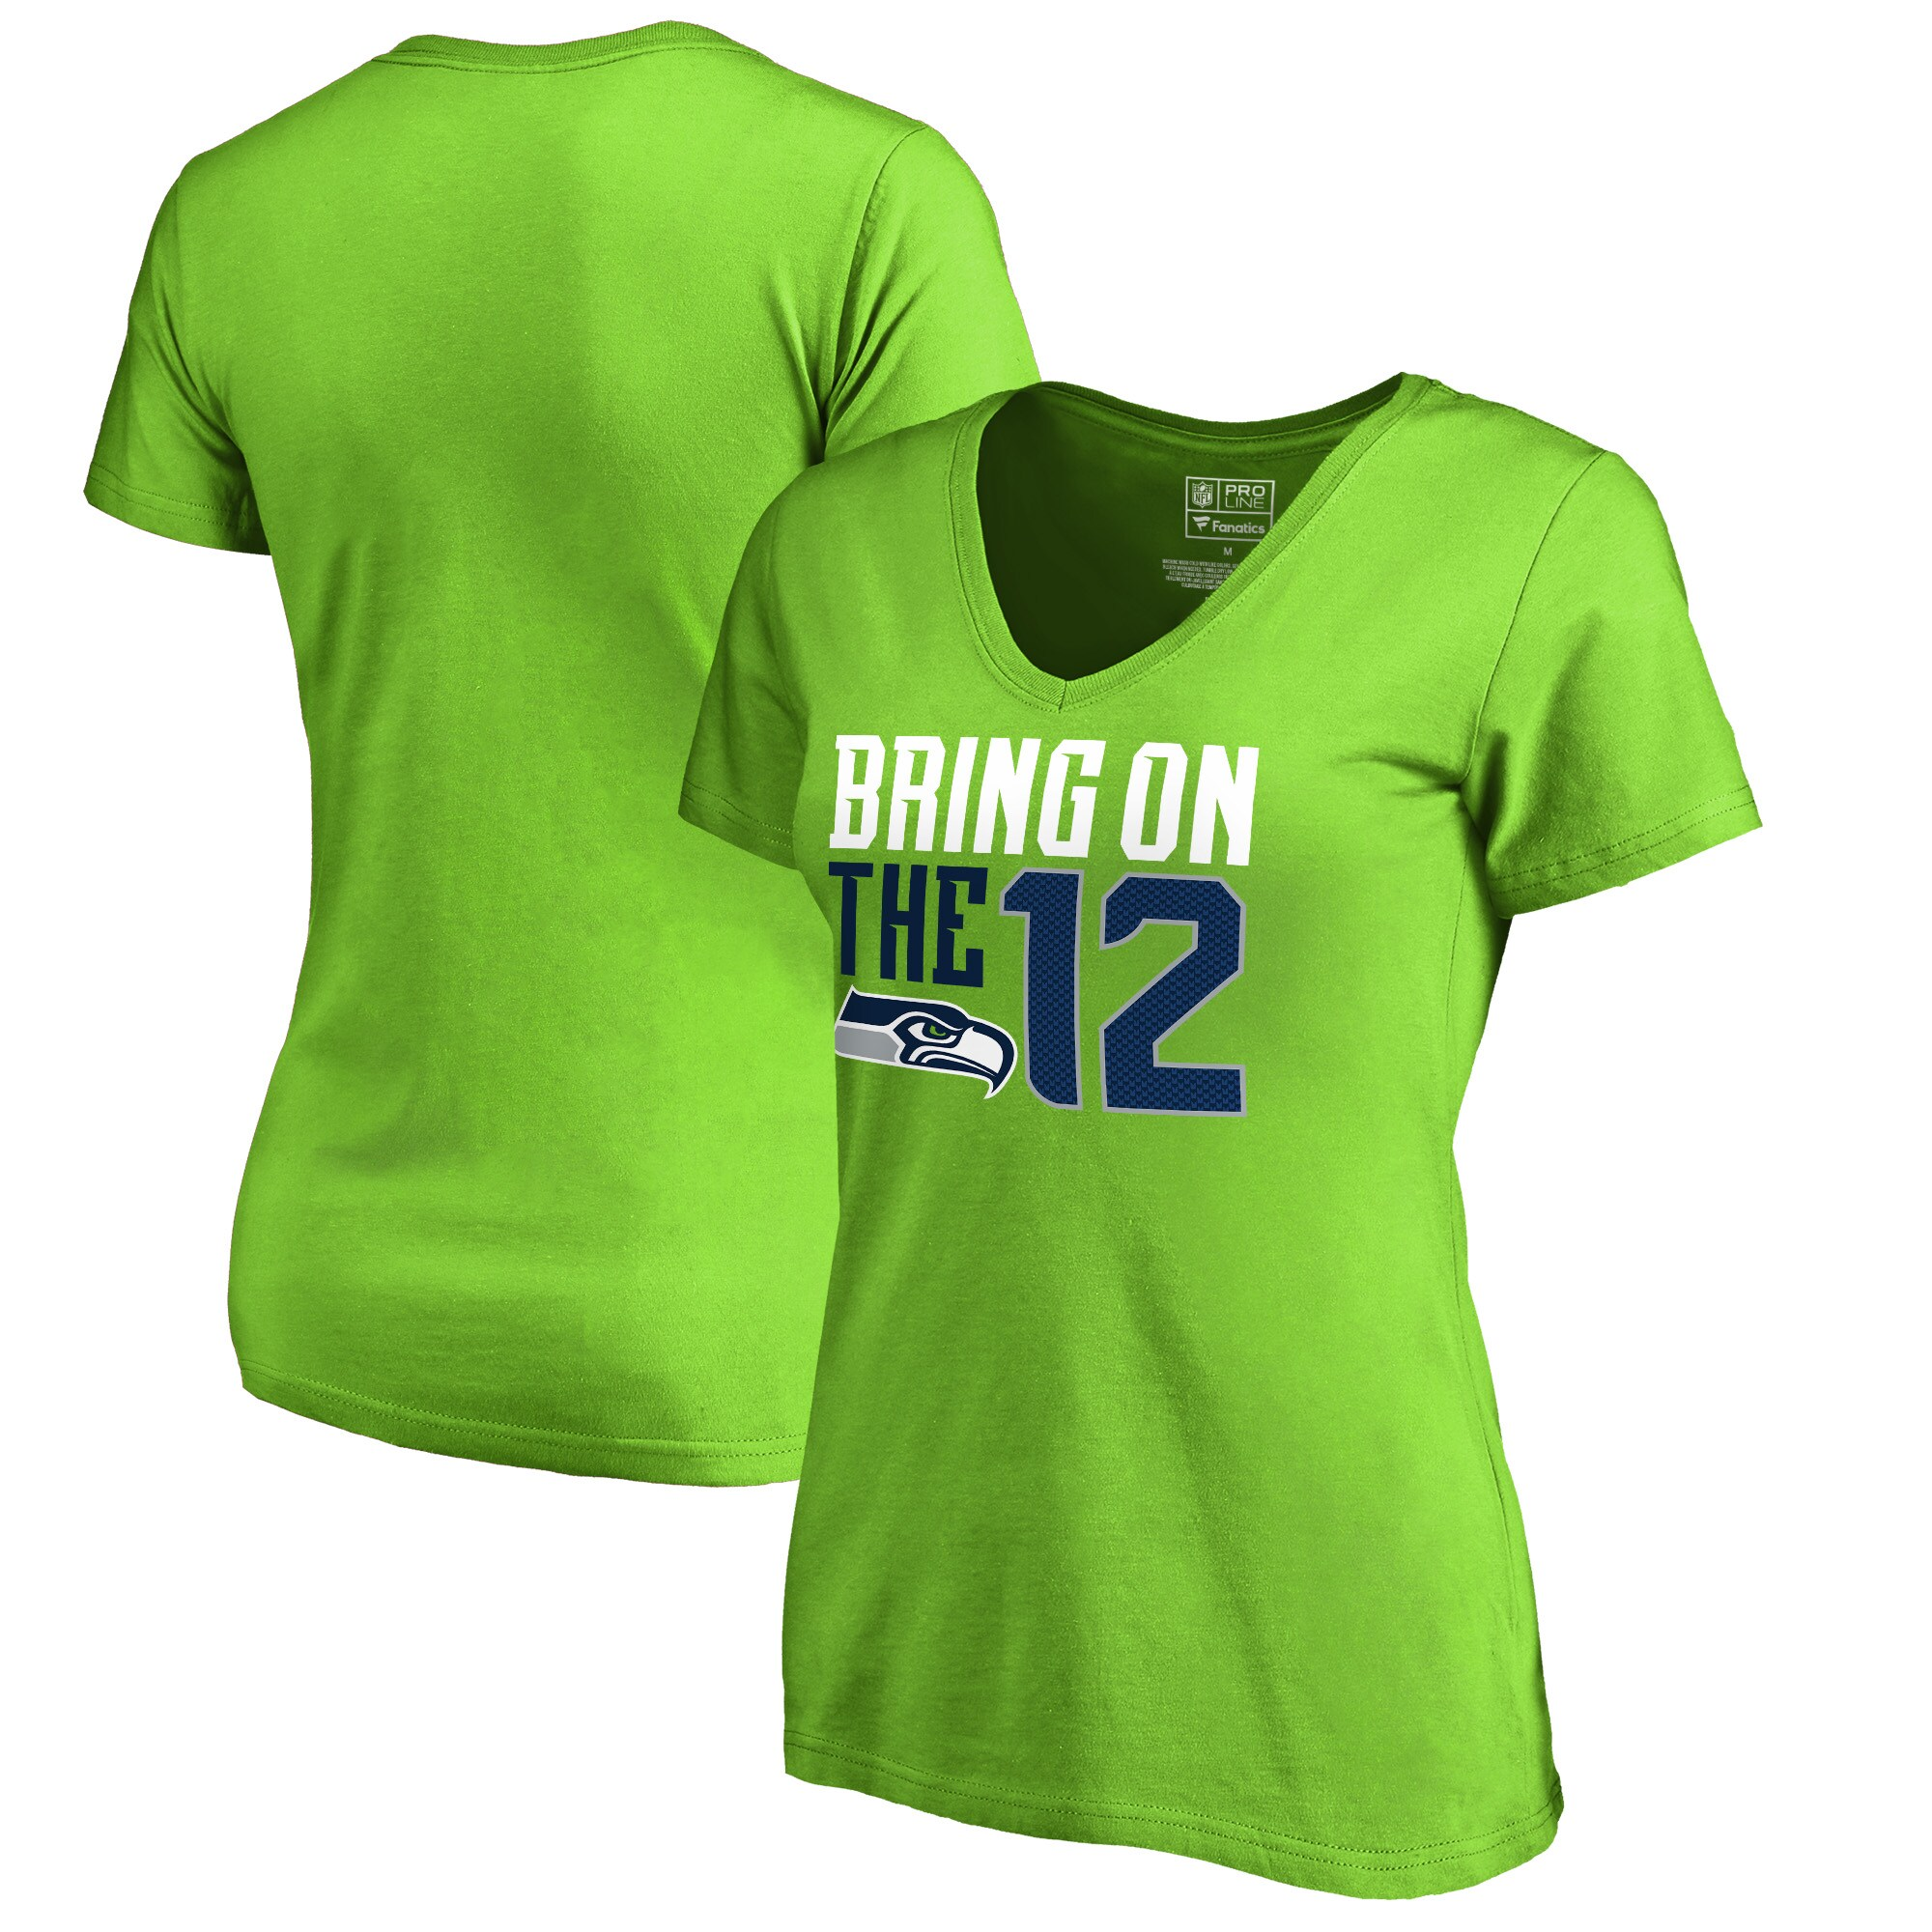 Seattle Seahawks NFL Pro Line by Fanatics Branded Women's Hometown Collection V-Neck T-Shirt - Neon Green